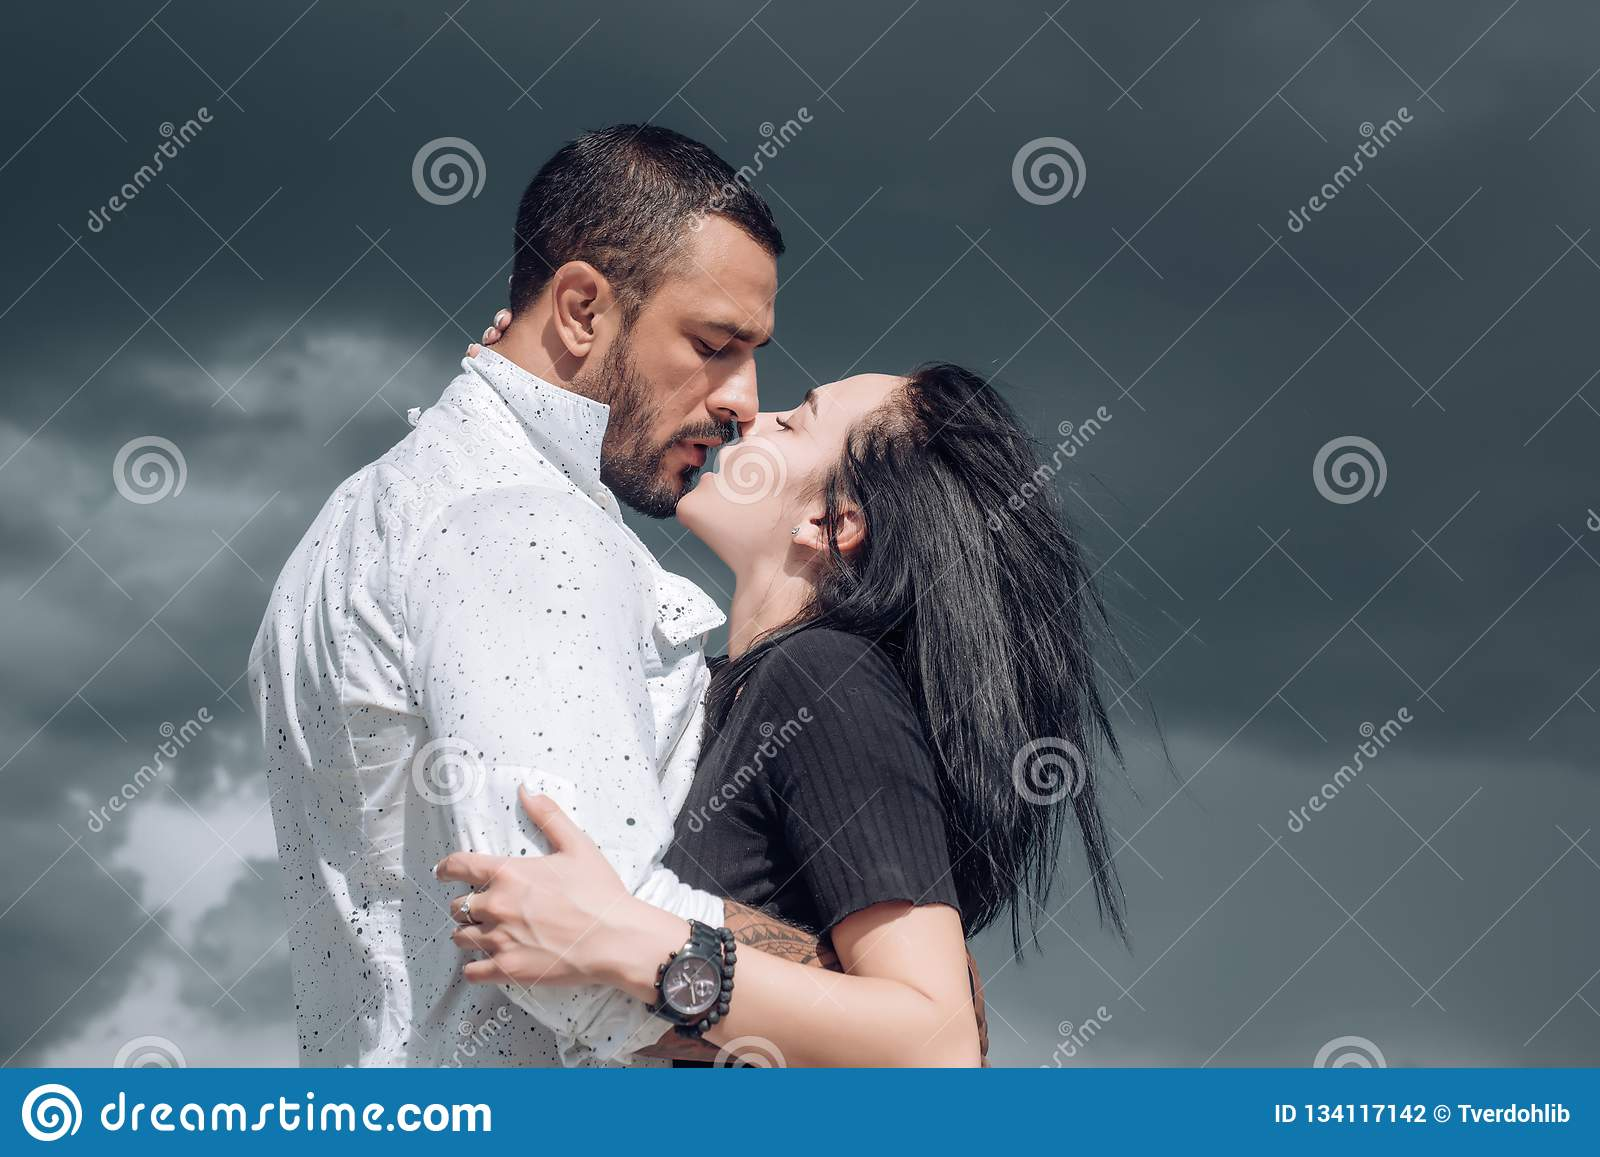 French Kiss Couple Images embrace and kiss. couple in french kiss. in love and i love you